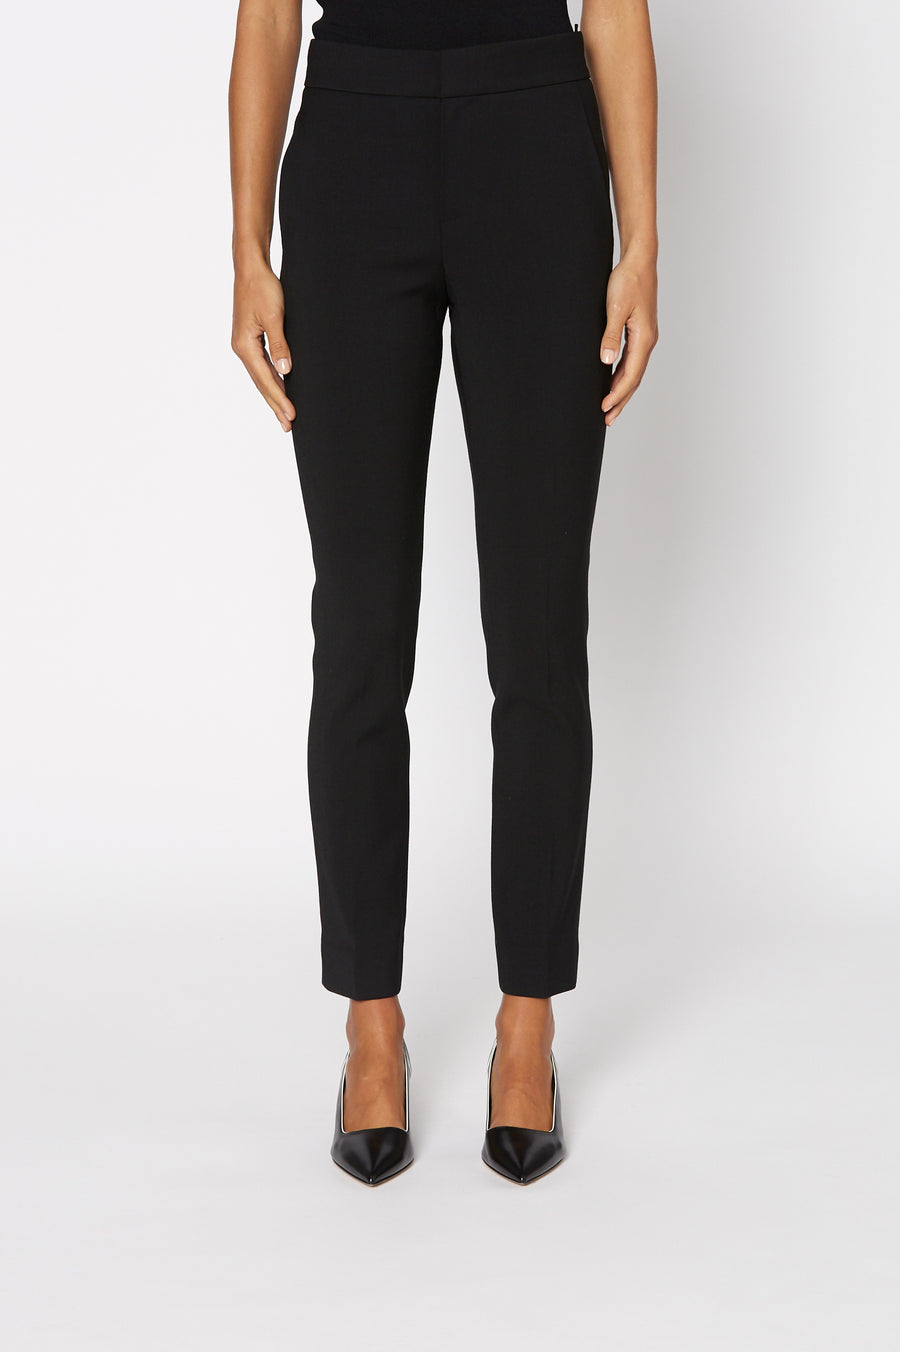 Atelier Slim Bootcut Trouser, bootcut style, welt and a flap back pocket, hook and bar closure, Color Black